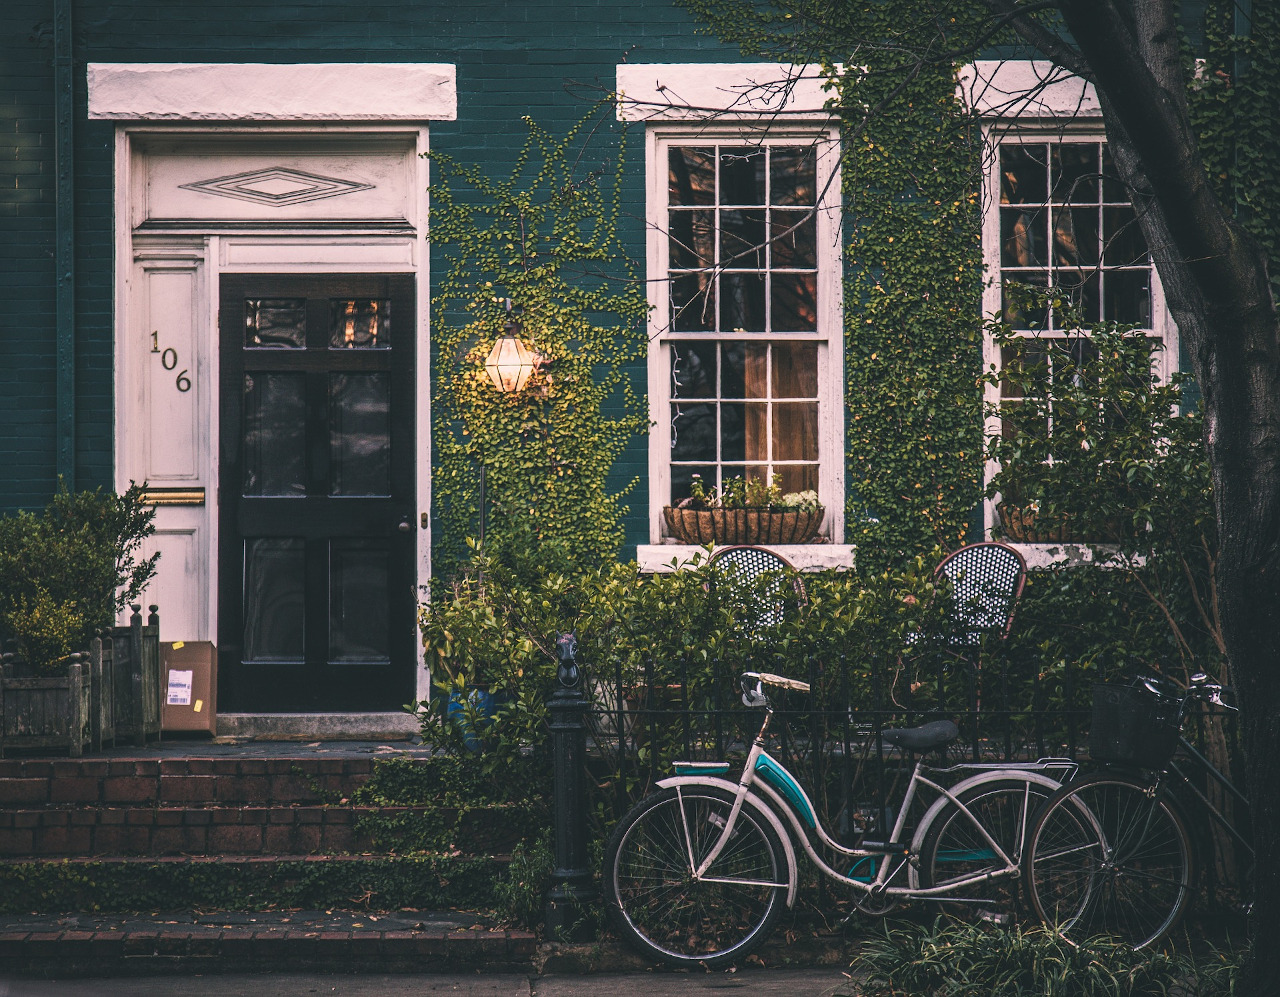 Home security: things to do before leaving for vacation #vacation #holiday #safety